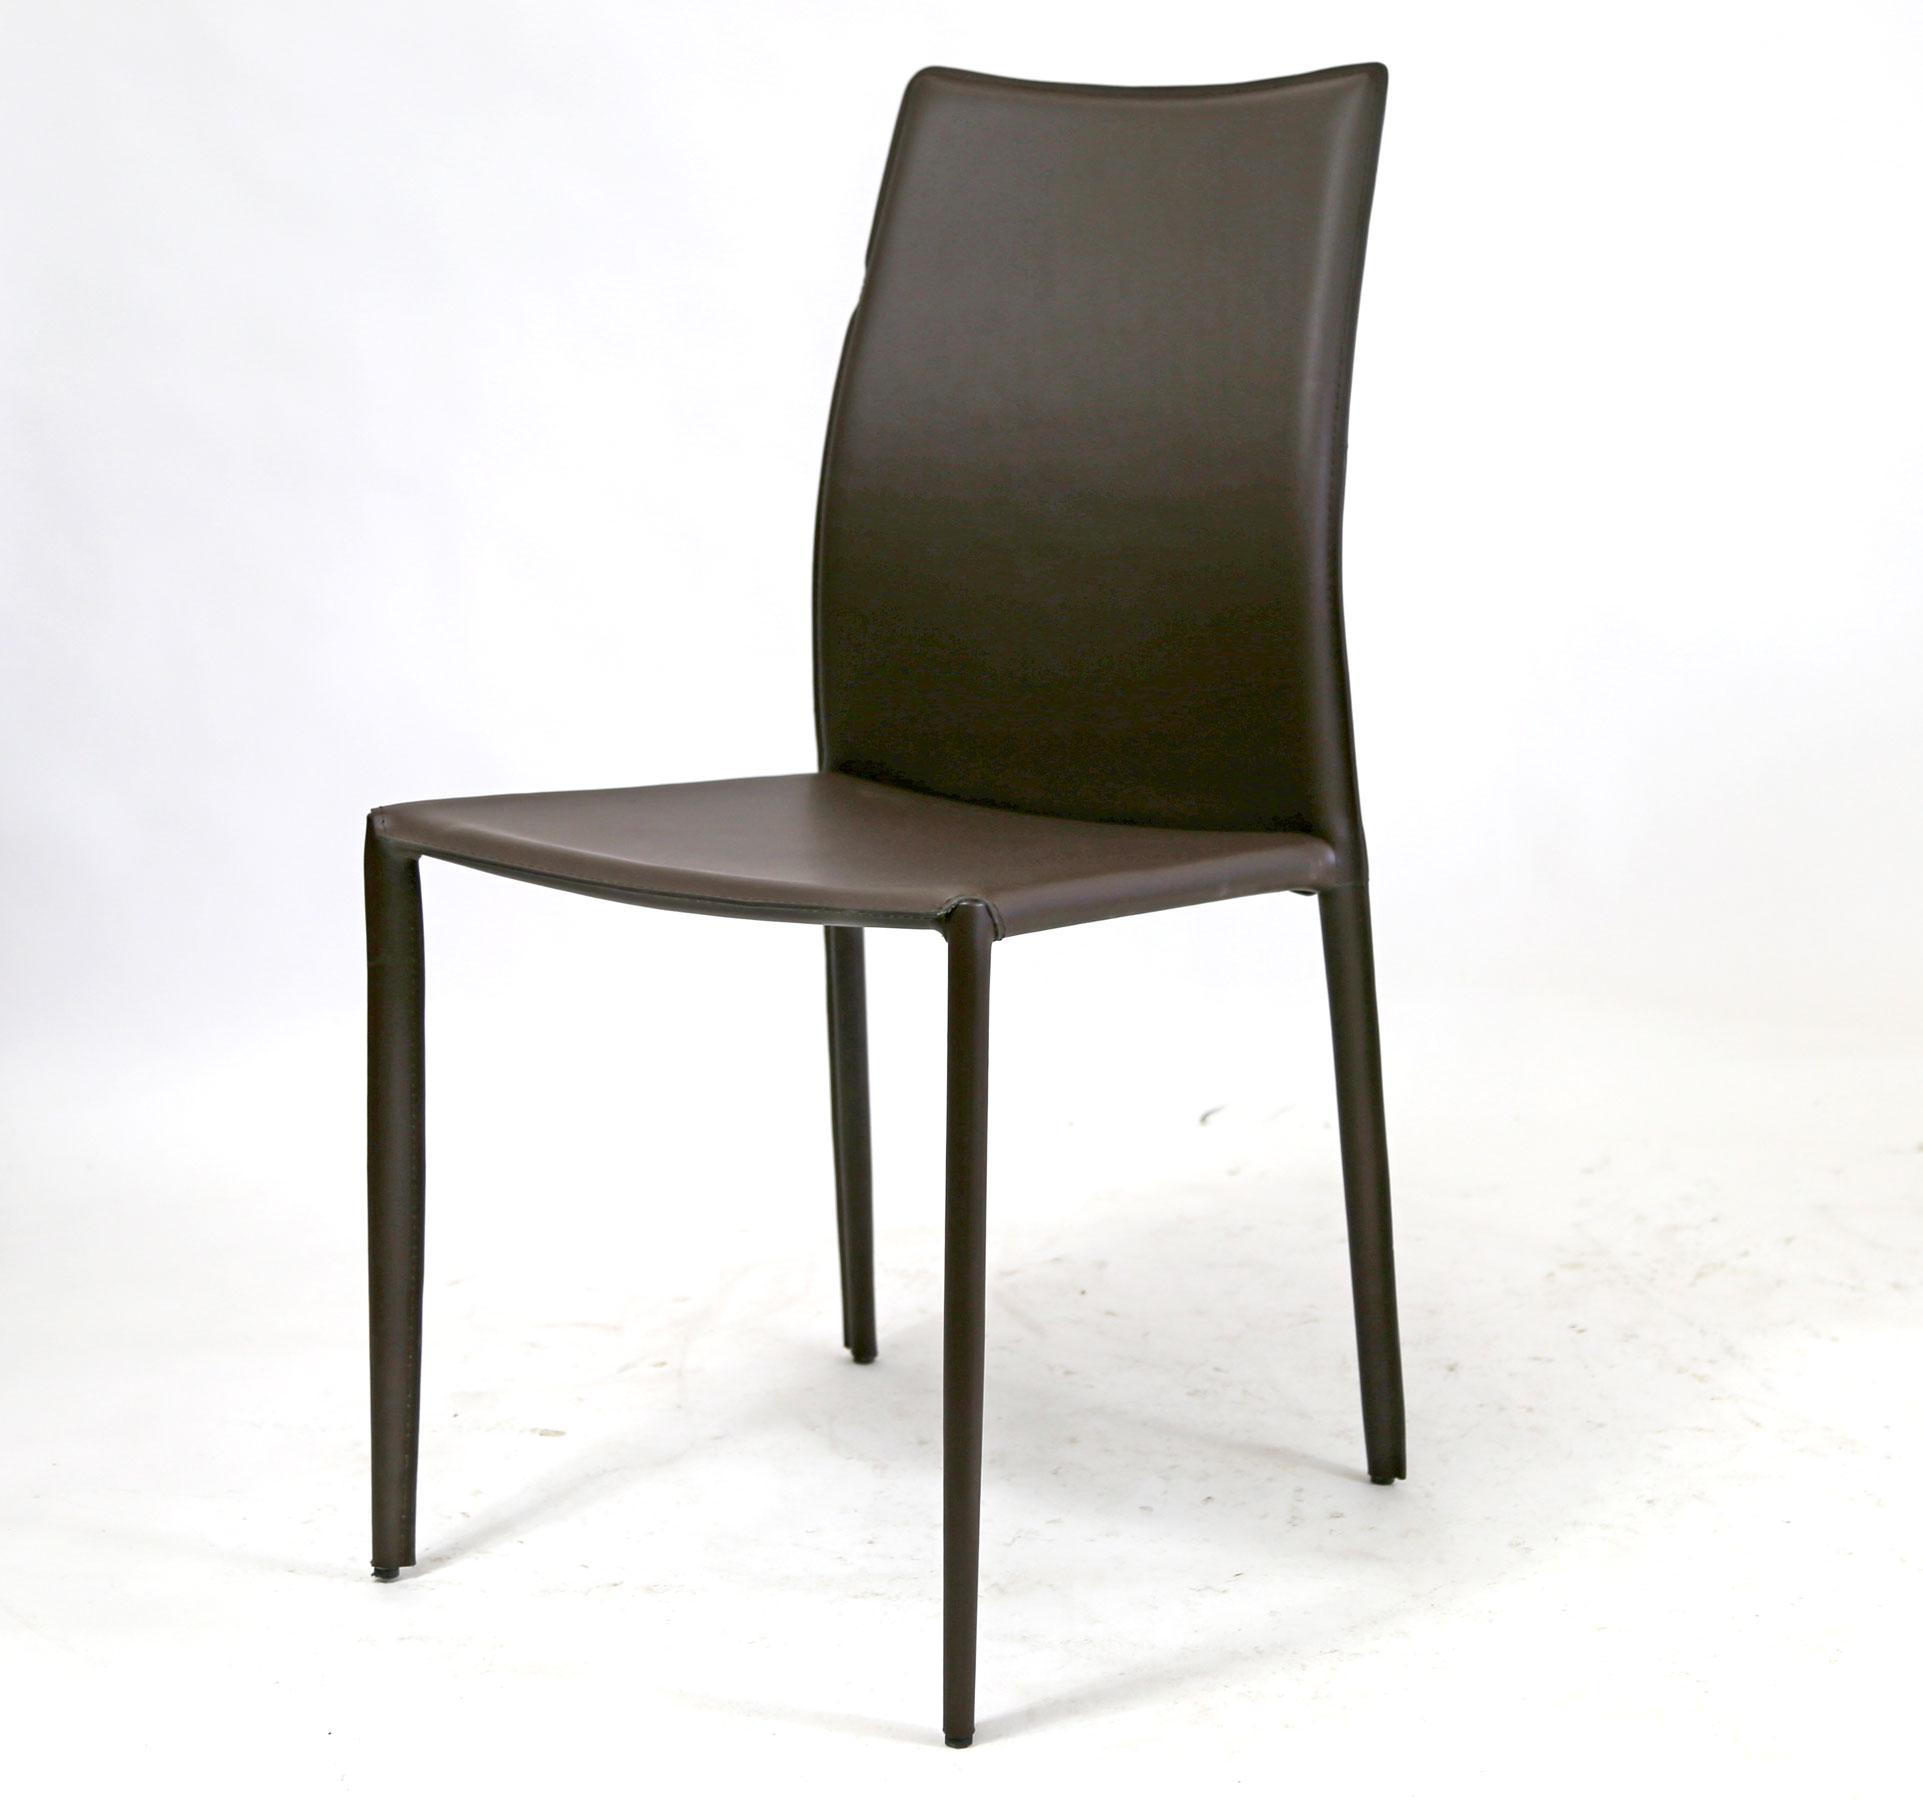 Superbe Alphaville Design Lilly Chair In A Dark Brown Leather And In Good Overall  Floor Model Condition